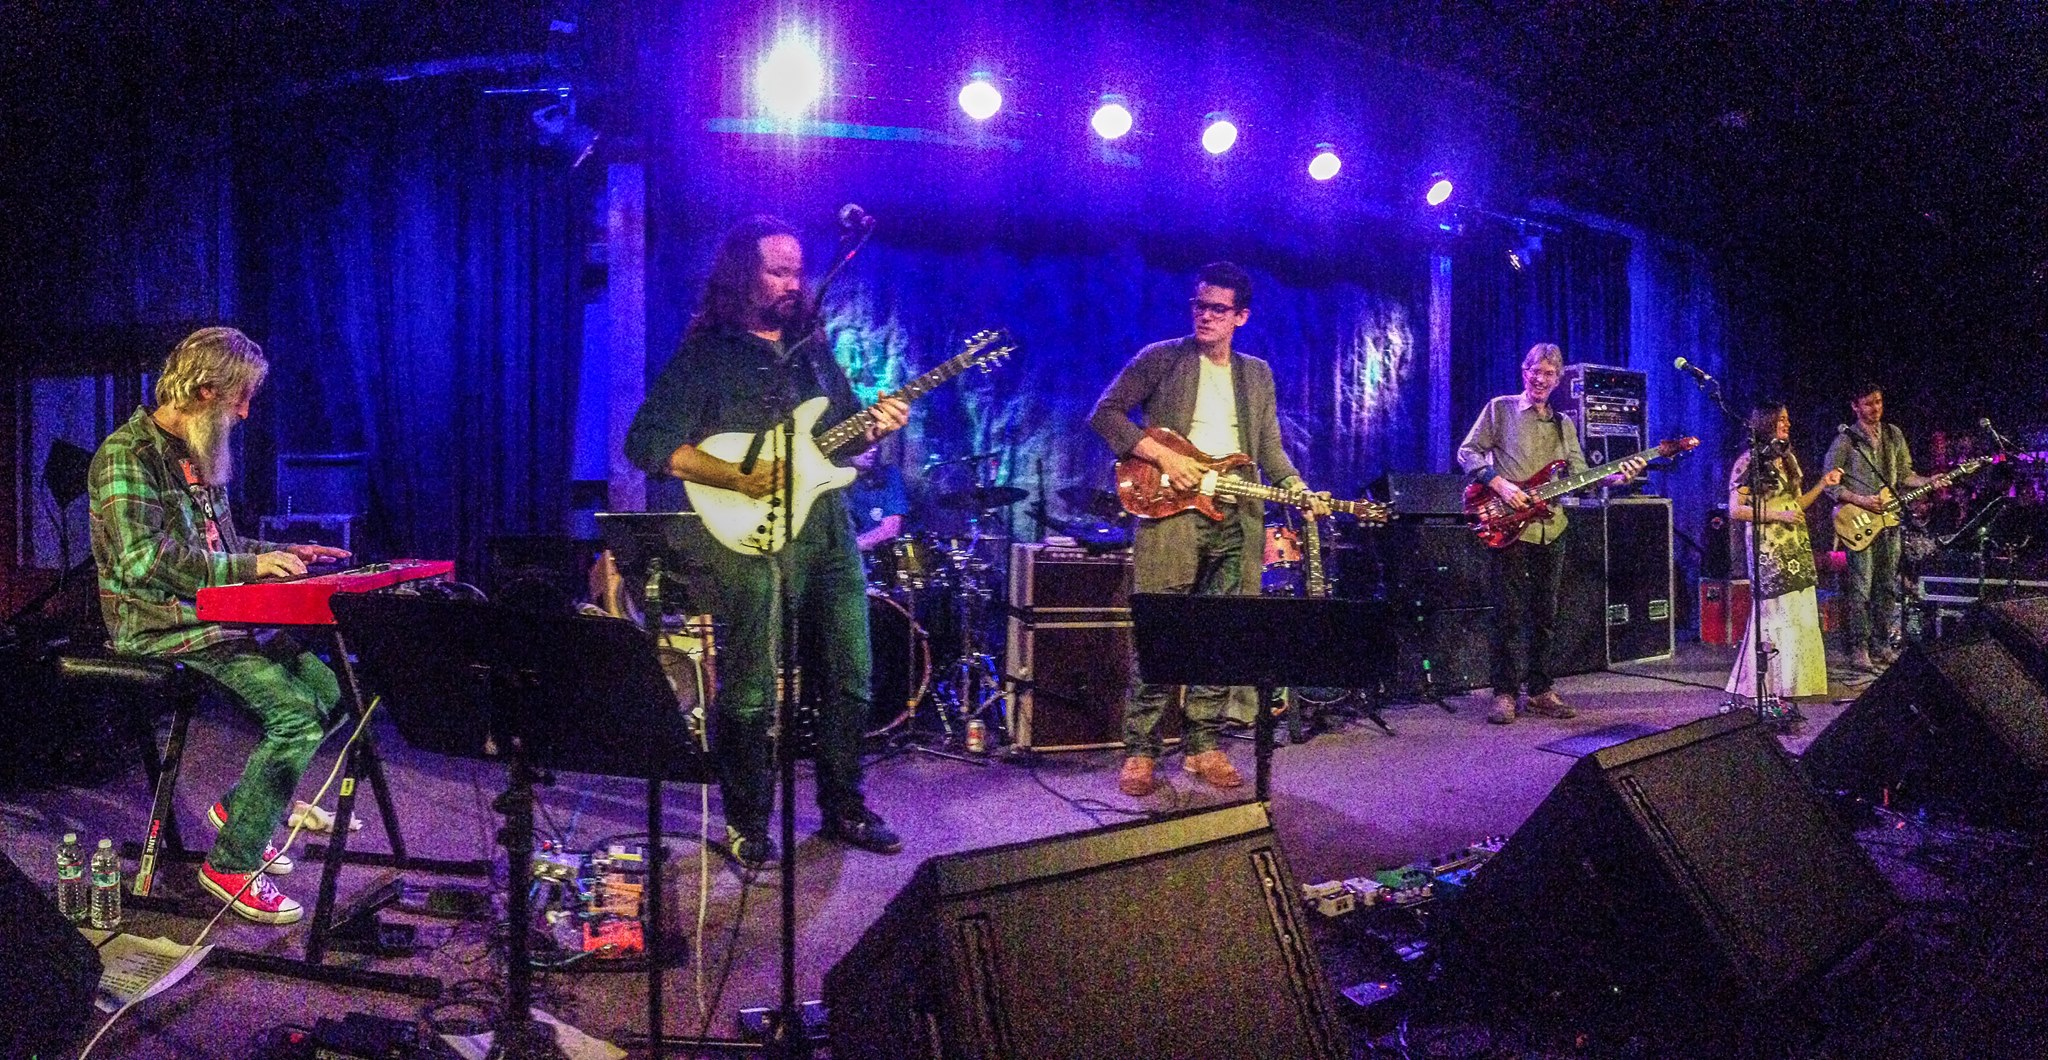 Phil Lesh and Friends